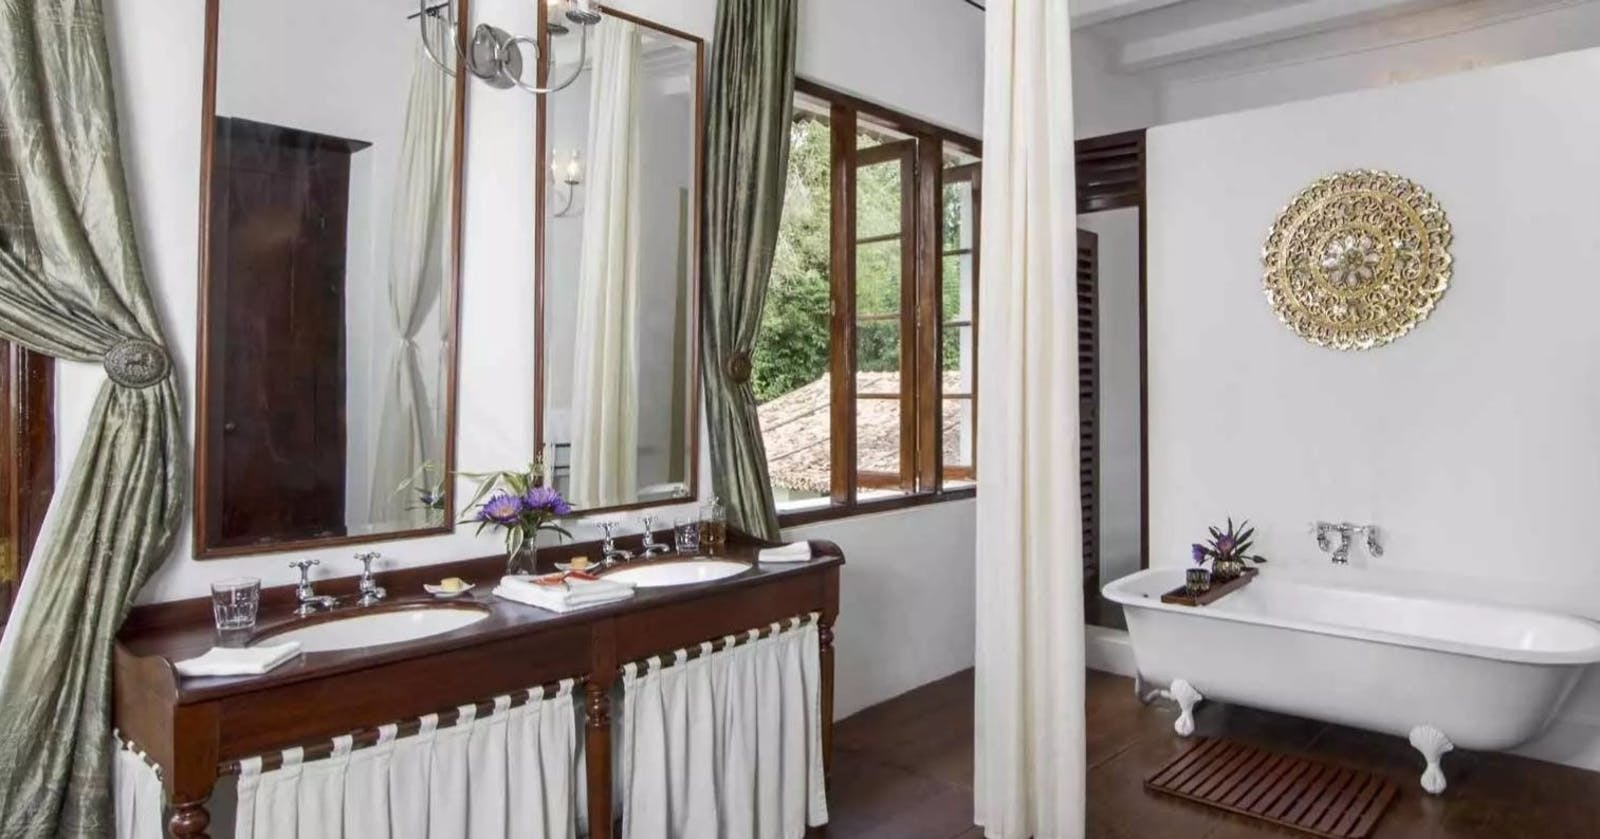 Bathroom Facility, Kandy House, Kandy, Sri Lanka